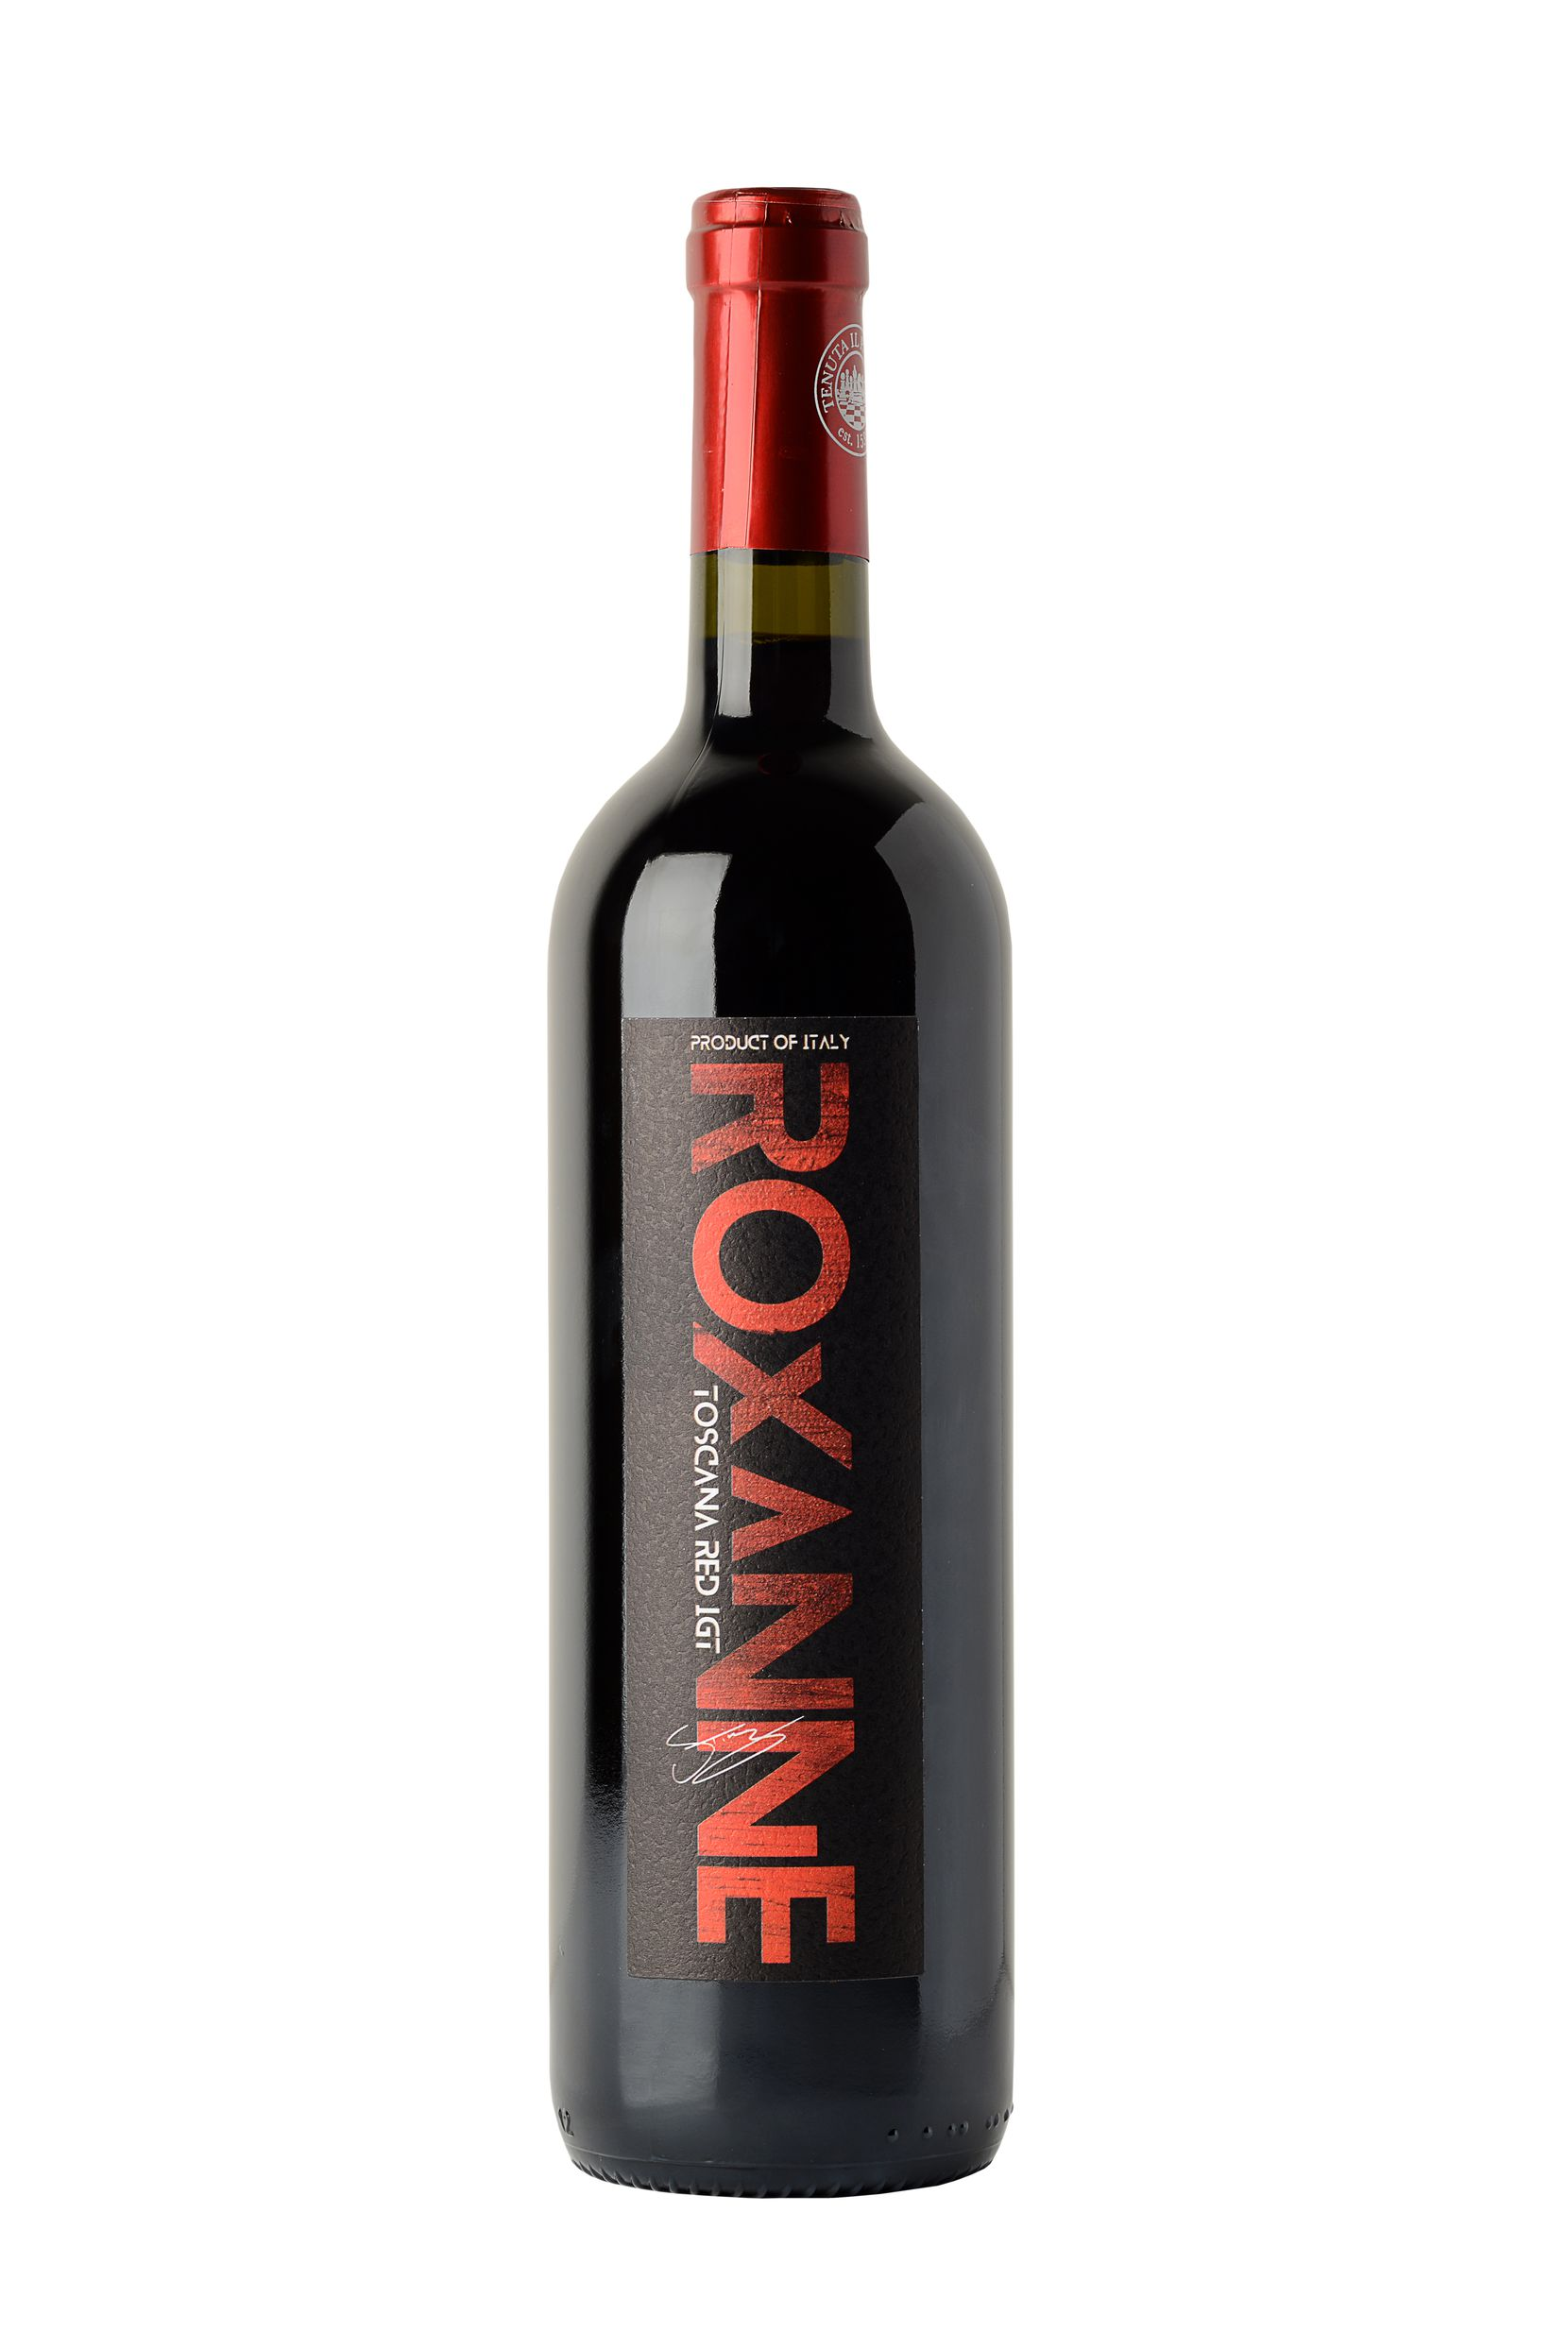 Il Palagio, Sangiovese Toscano IGT, Roxanne 2018  ($15) is a medium-bodied, smooth-drinking wine.